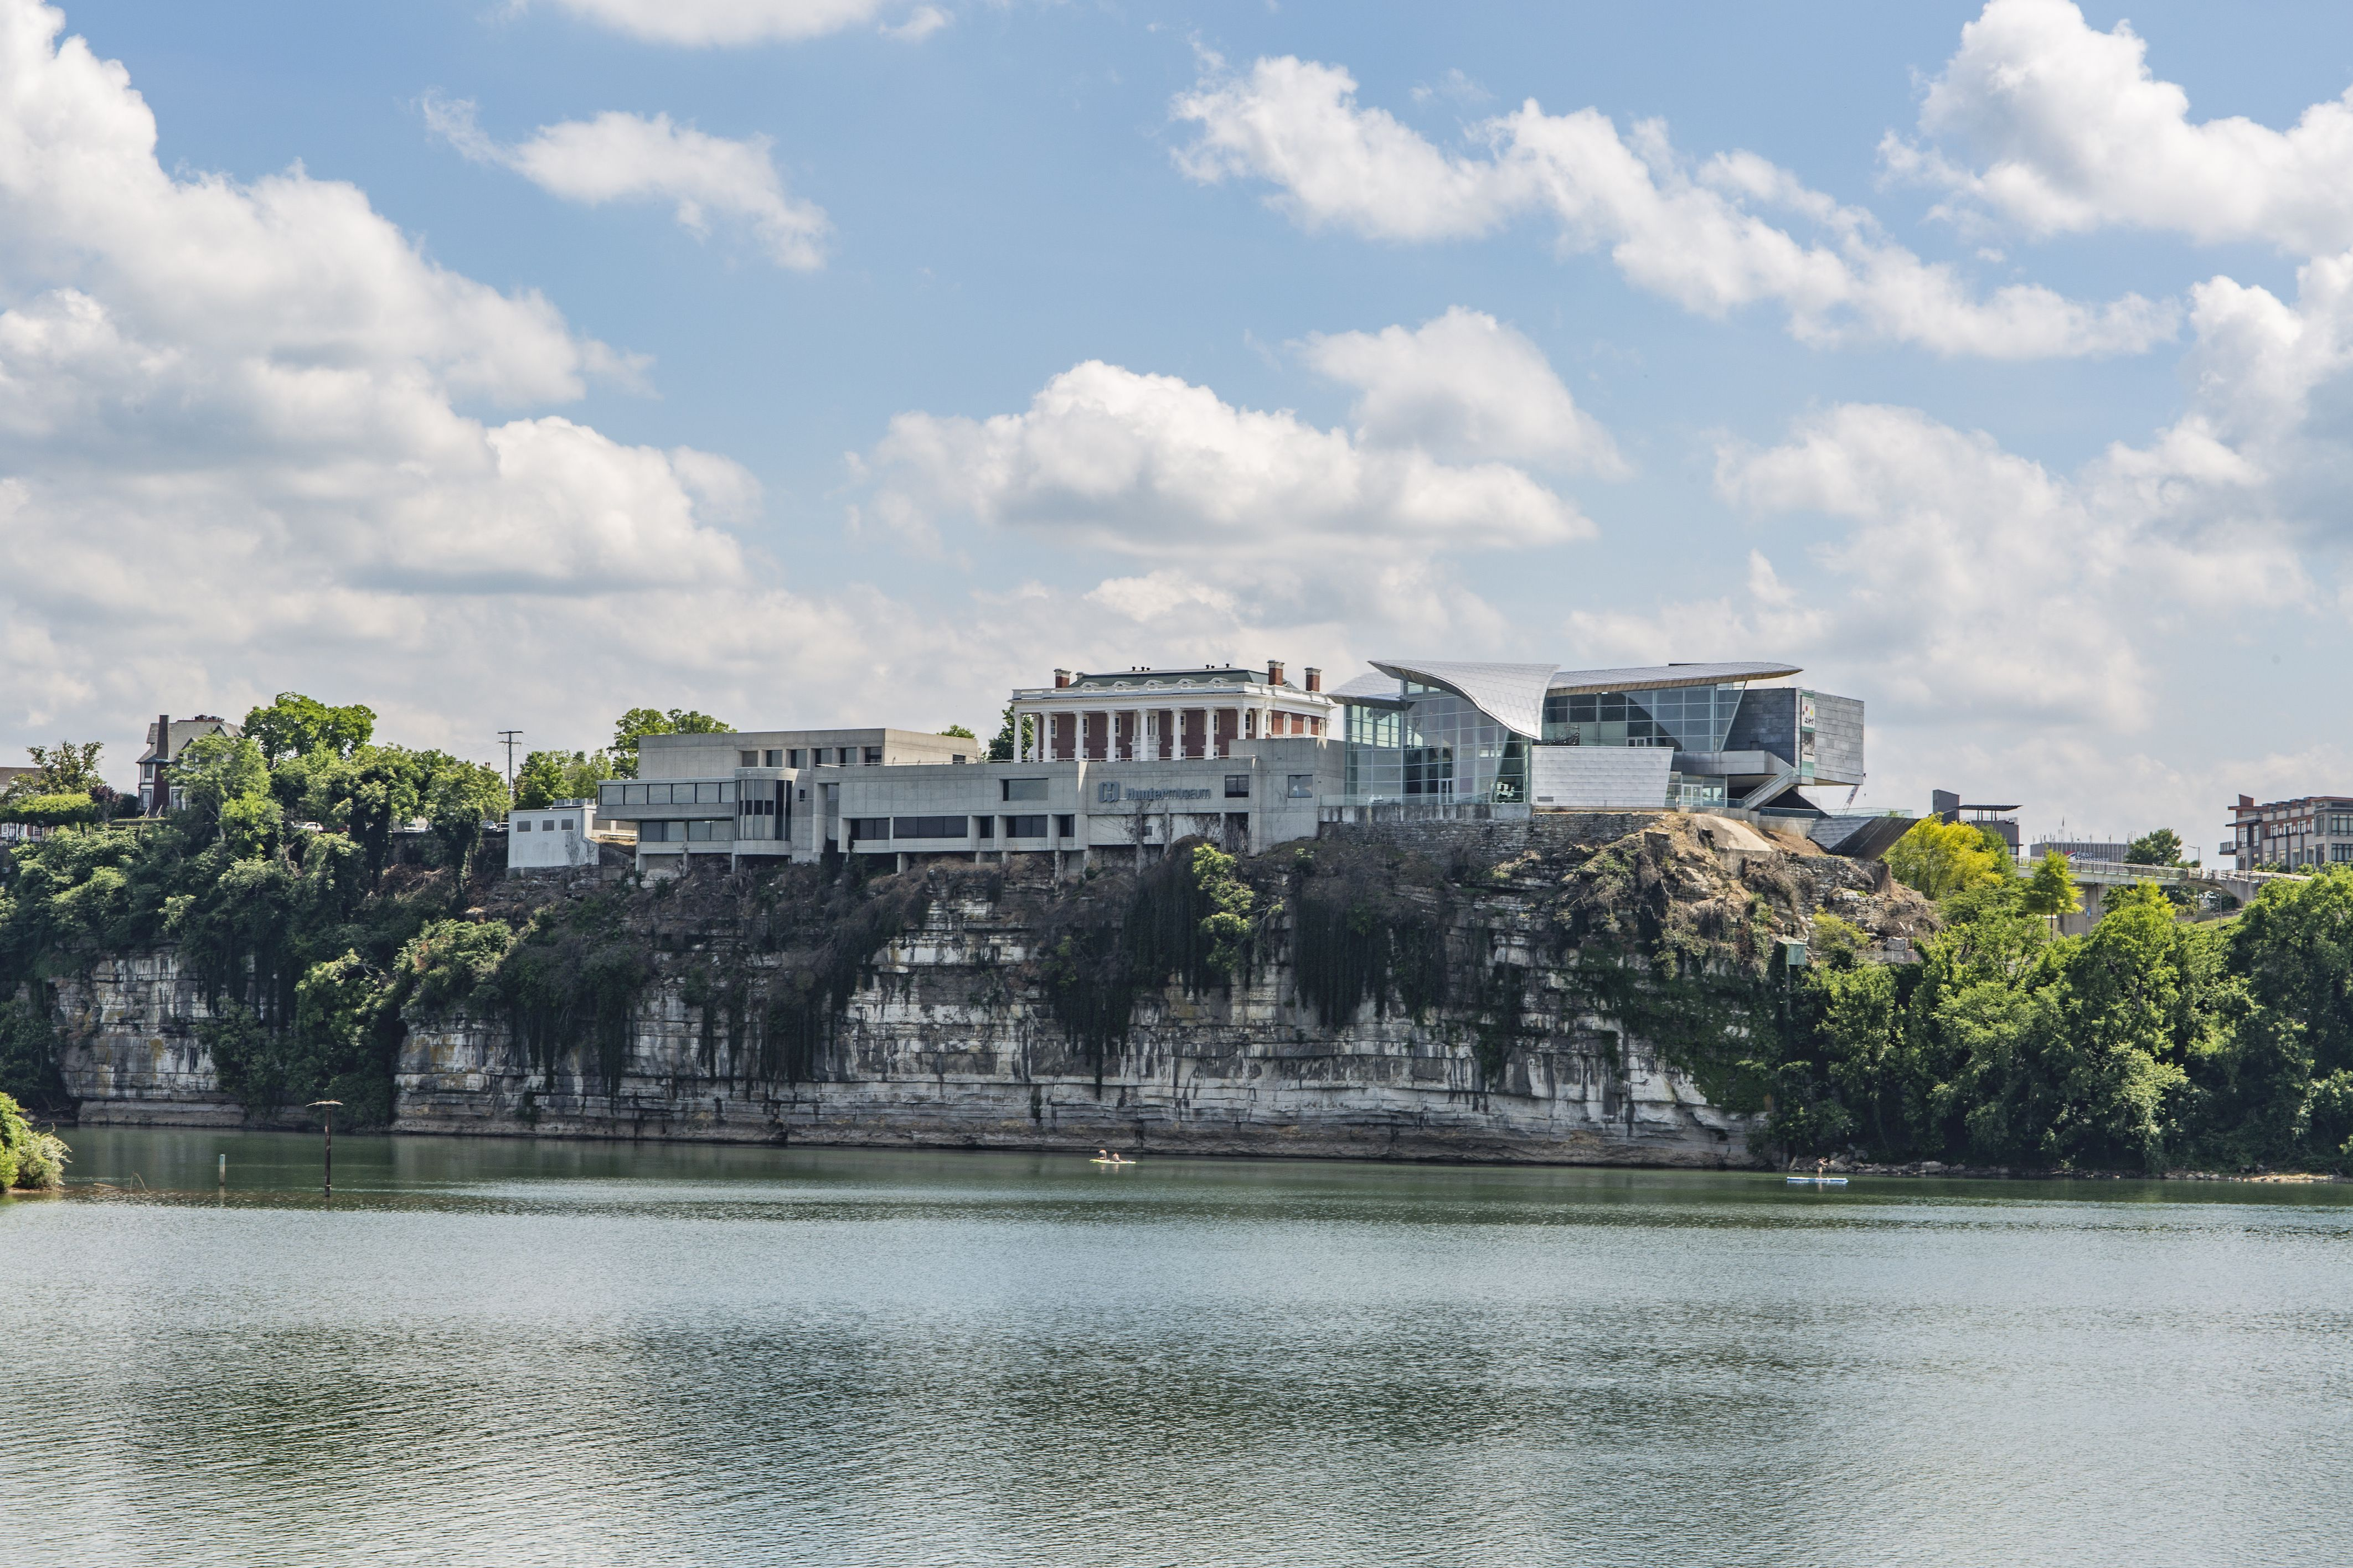 Long shot of the Hunter Museum sitting atop the bluff and the Tennessee River below.